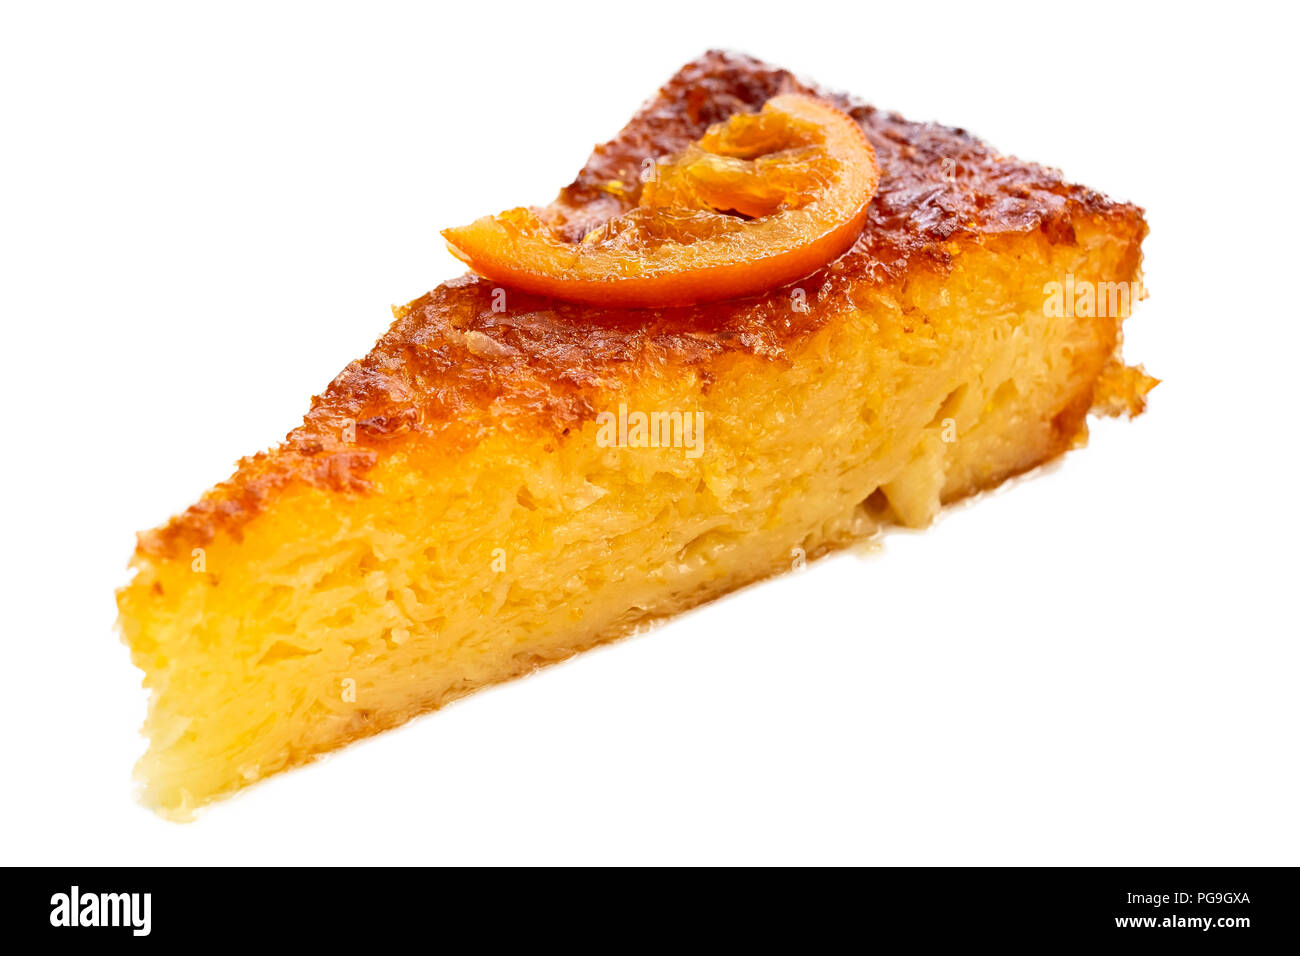 A piece of traditional greek orange cake isolated on white. Stock Photo